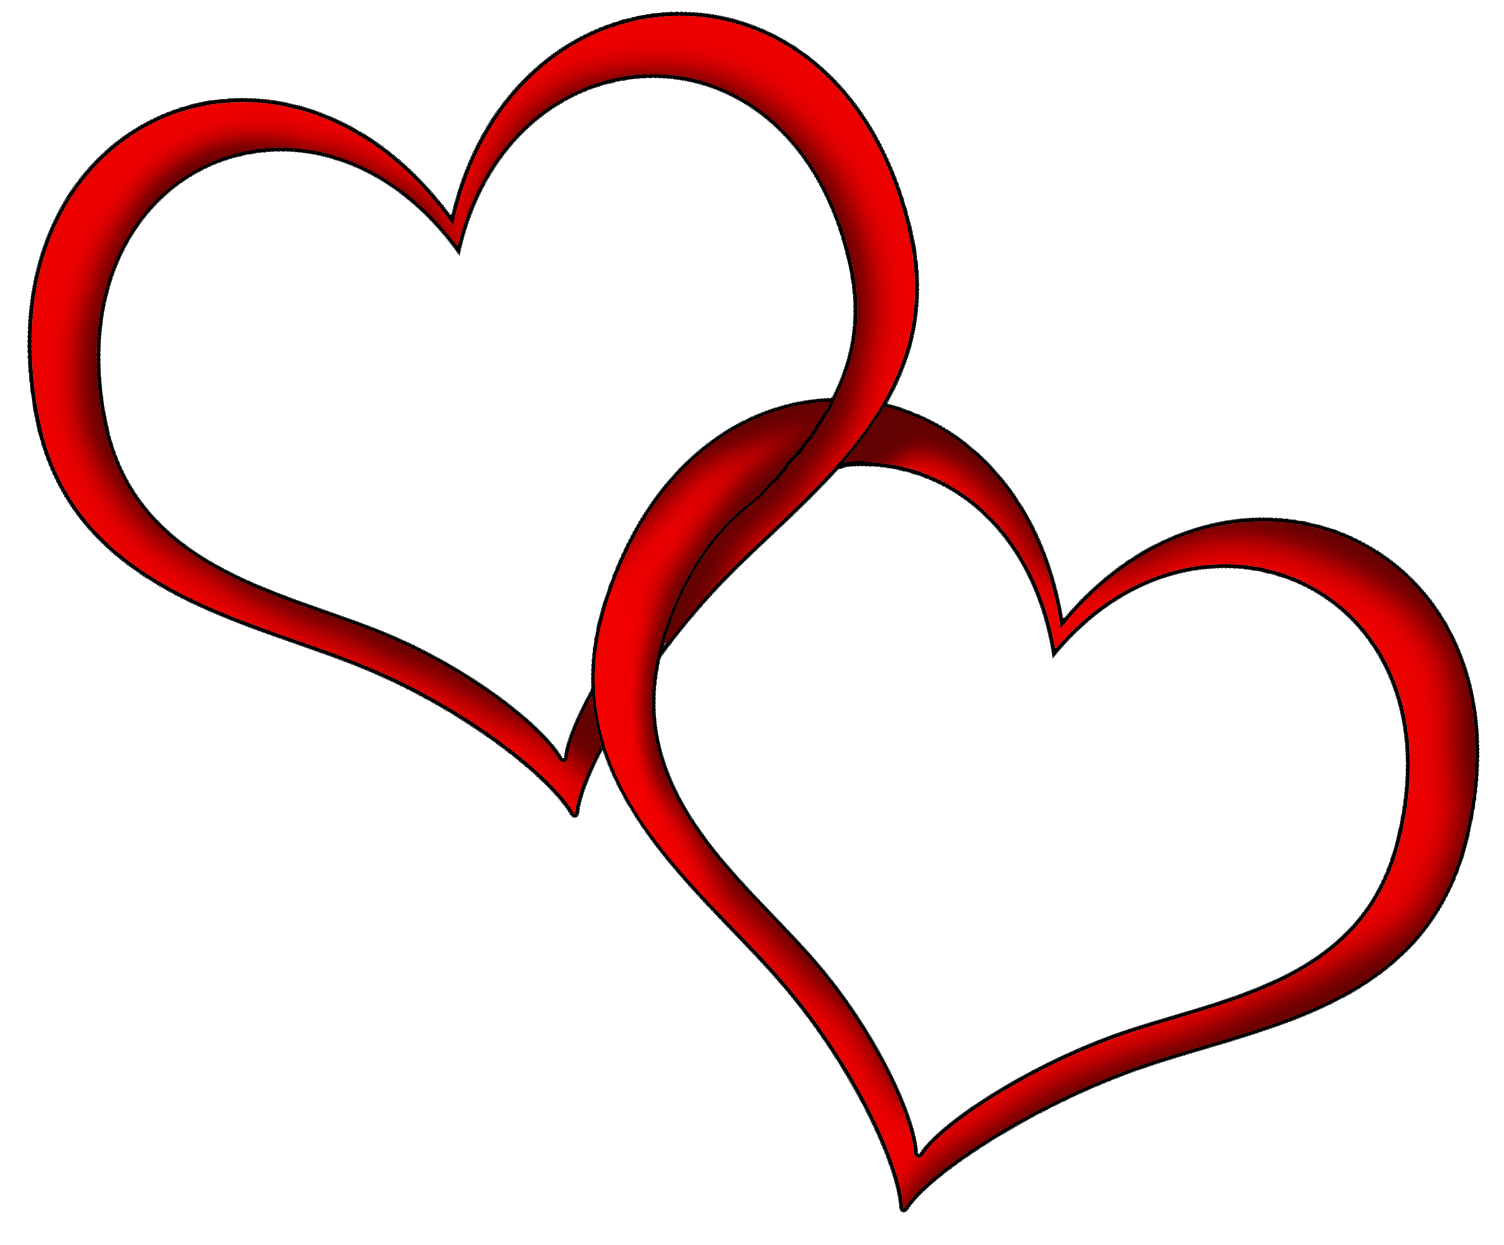 Wedding heart clipart 6 » Clipart Station.